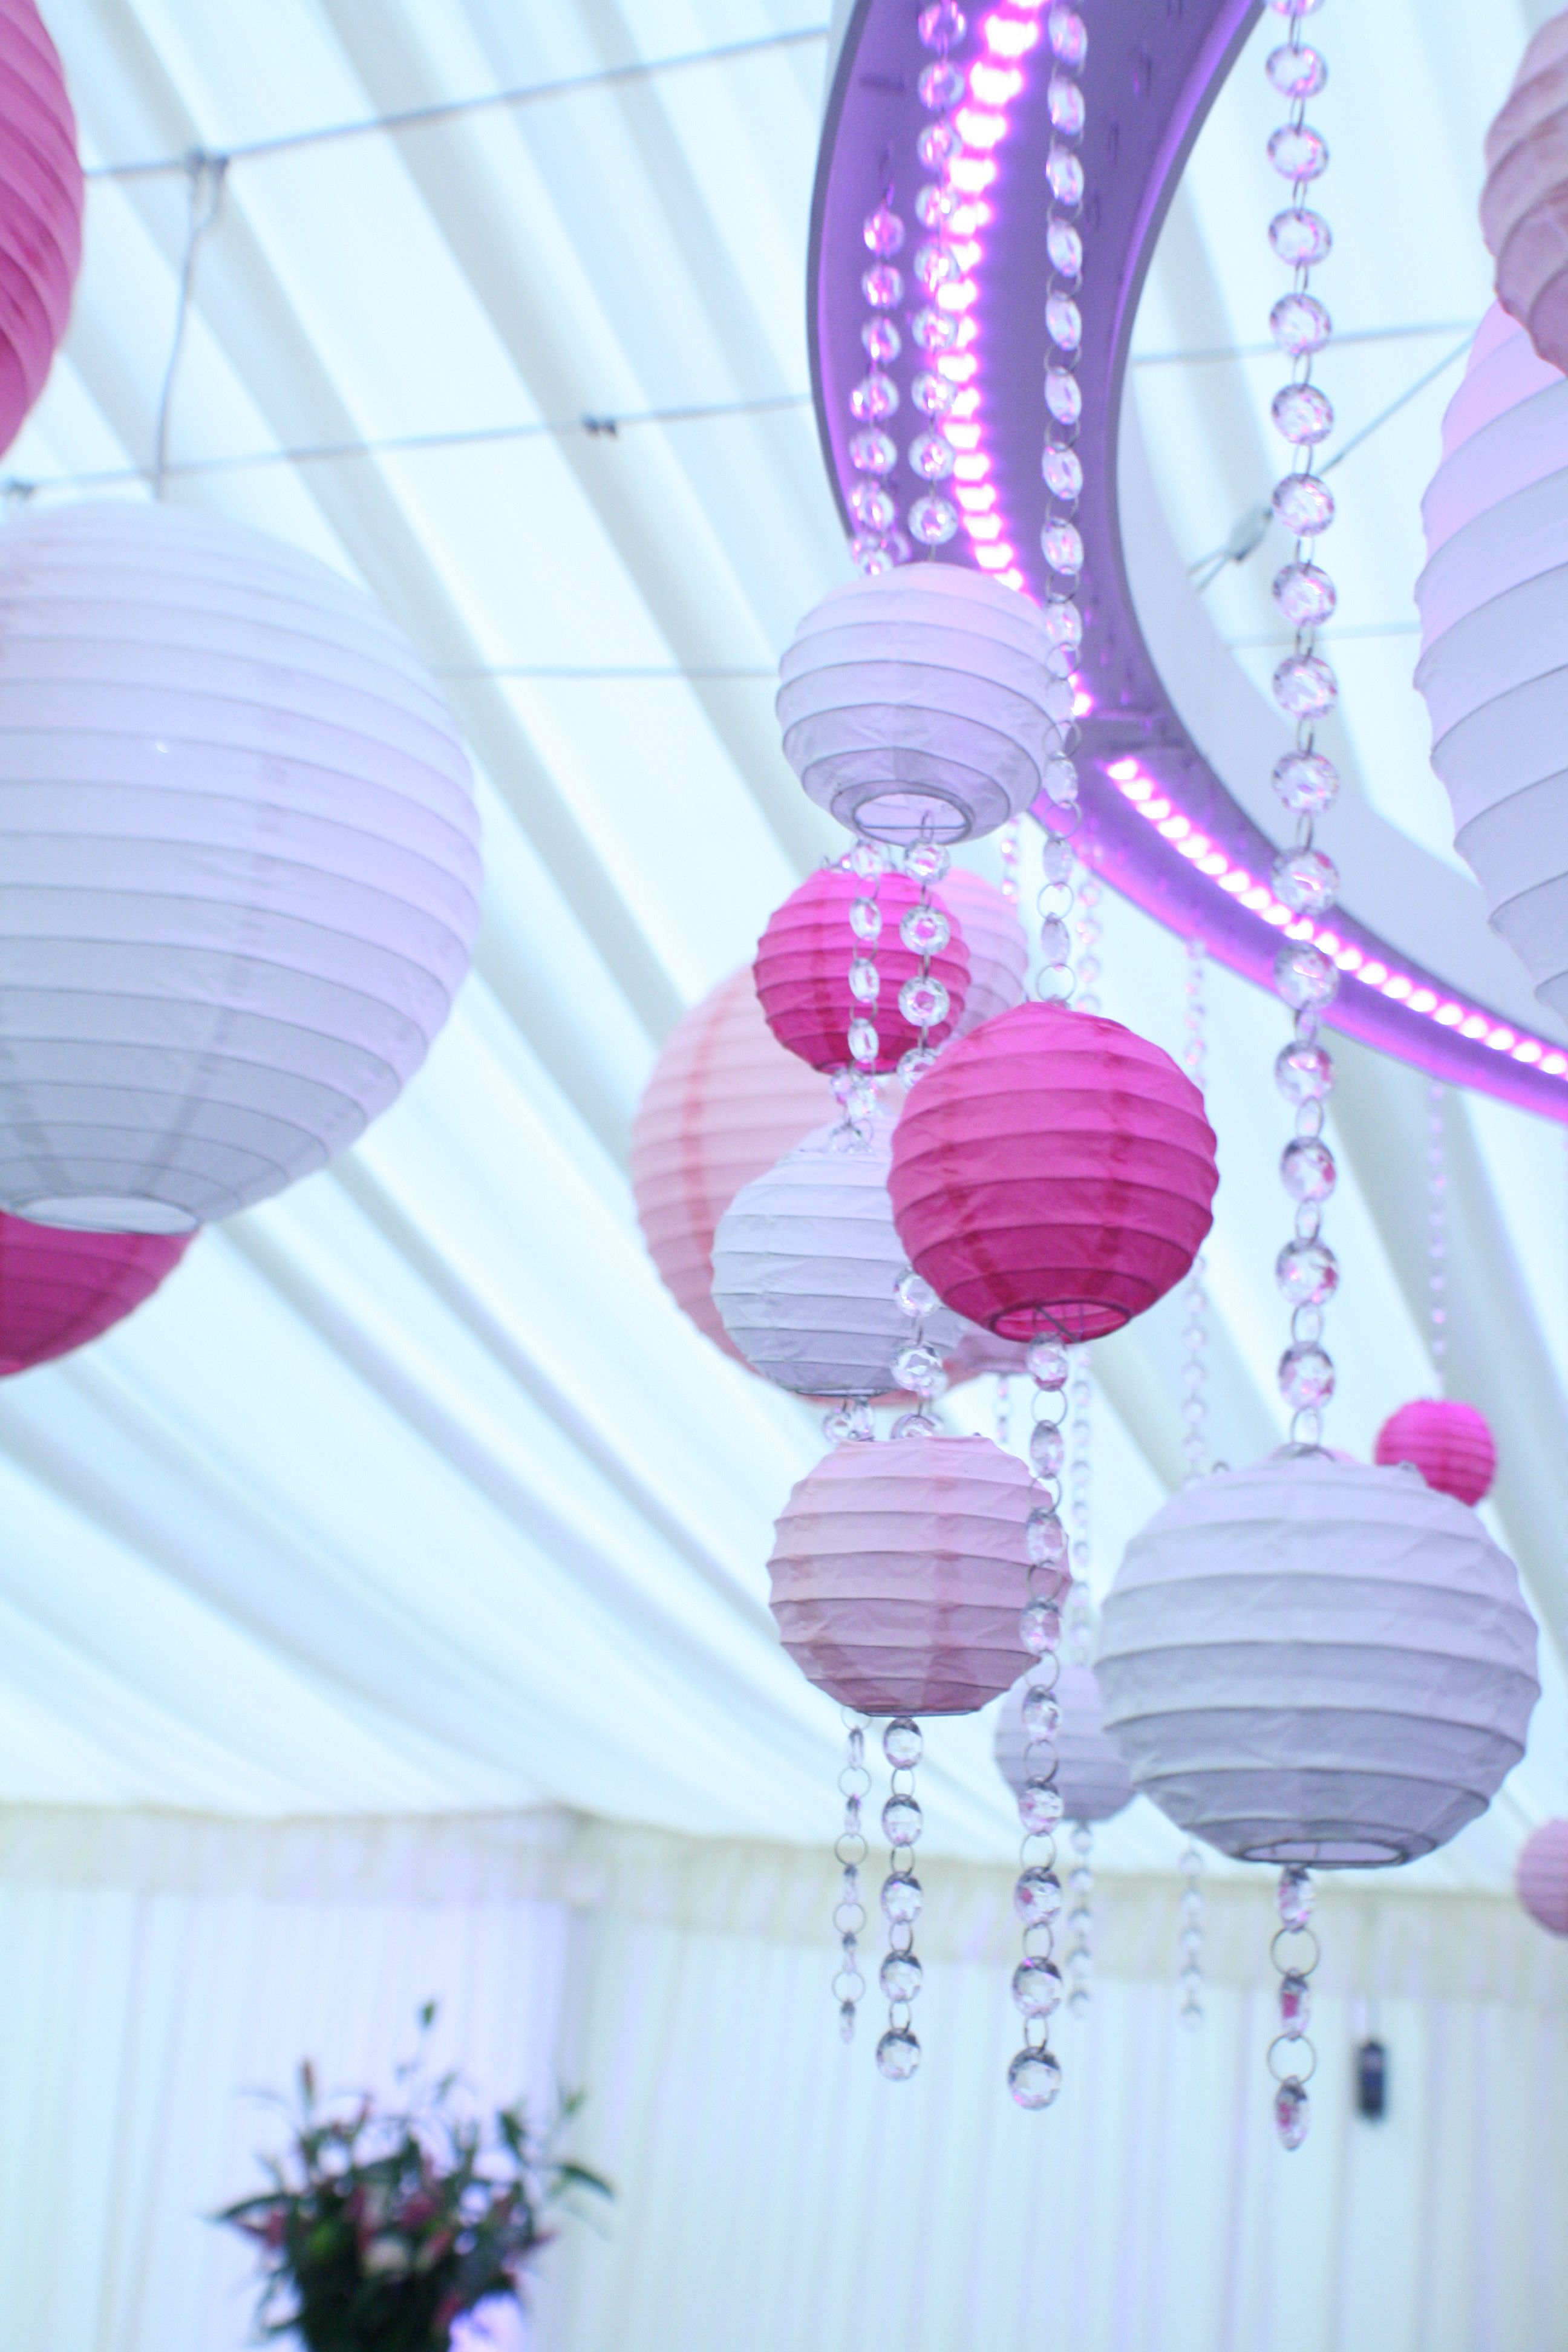 Mini paper lanterns look great hanging from